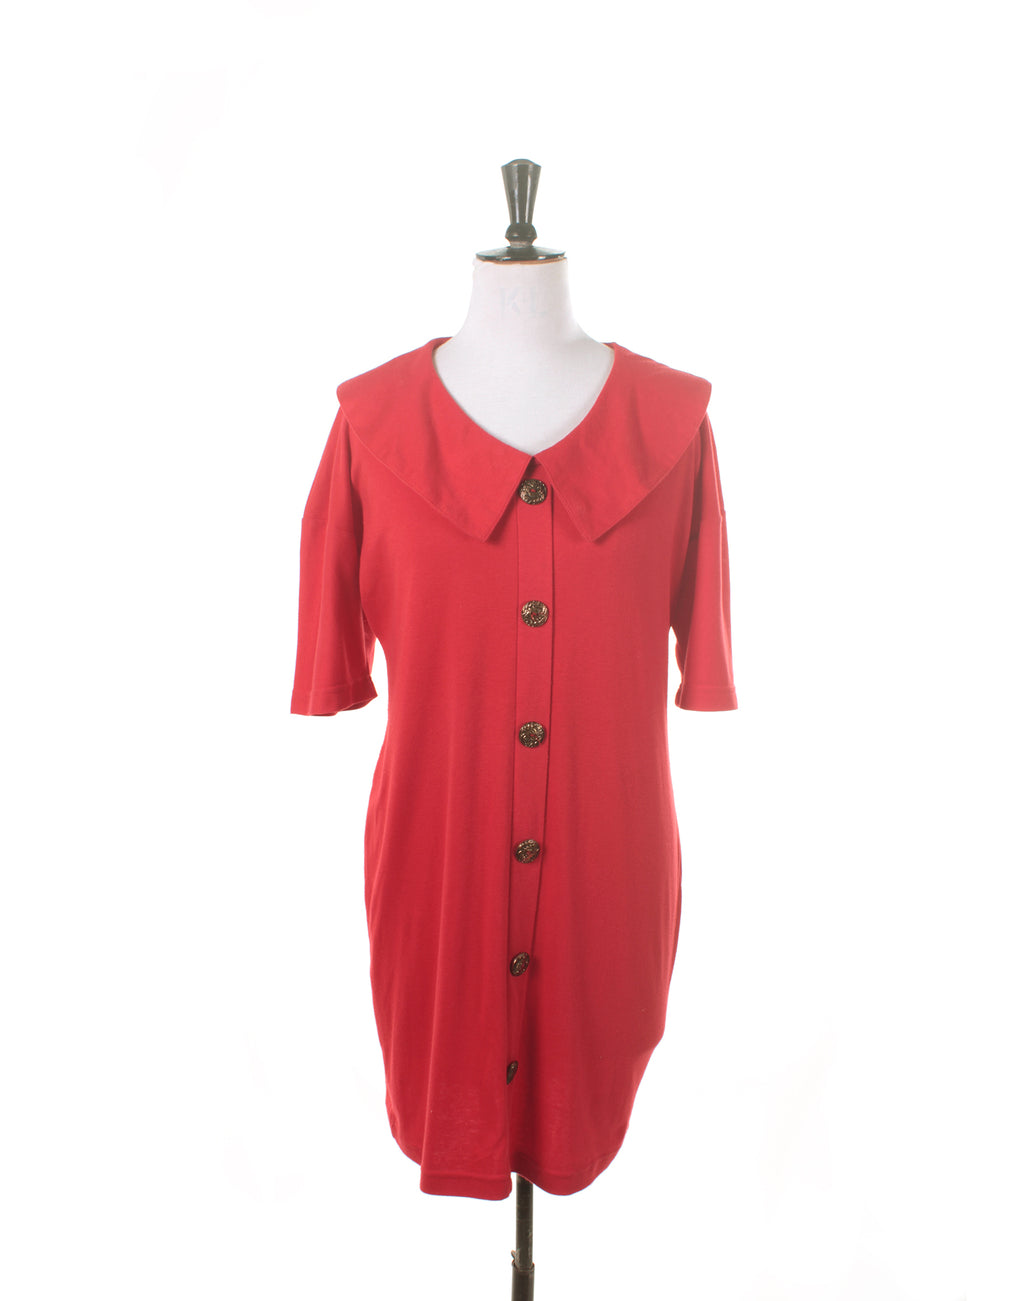 Vintage 80's Smartline Red Jersey Collar Button Dress